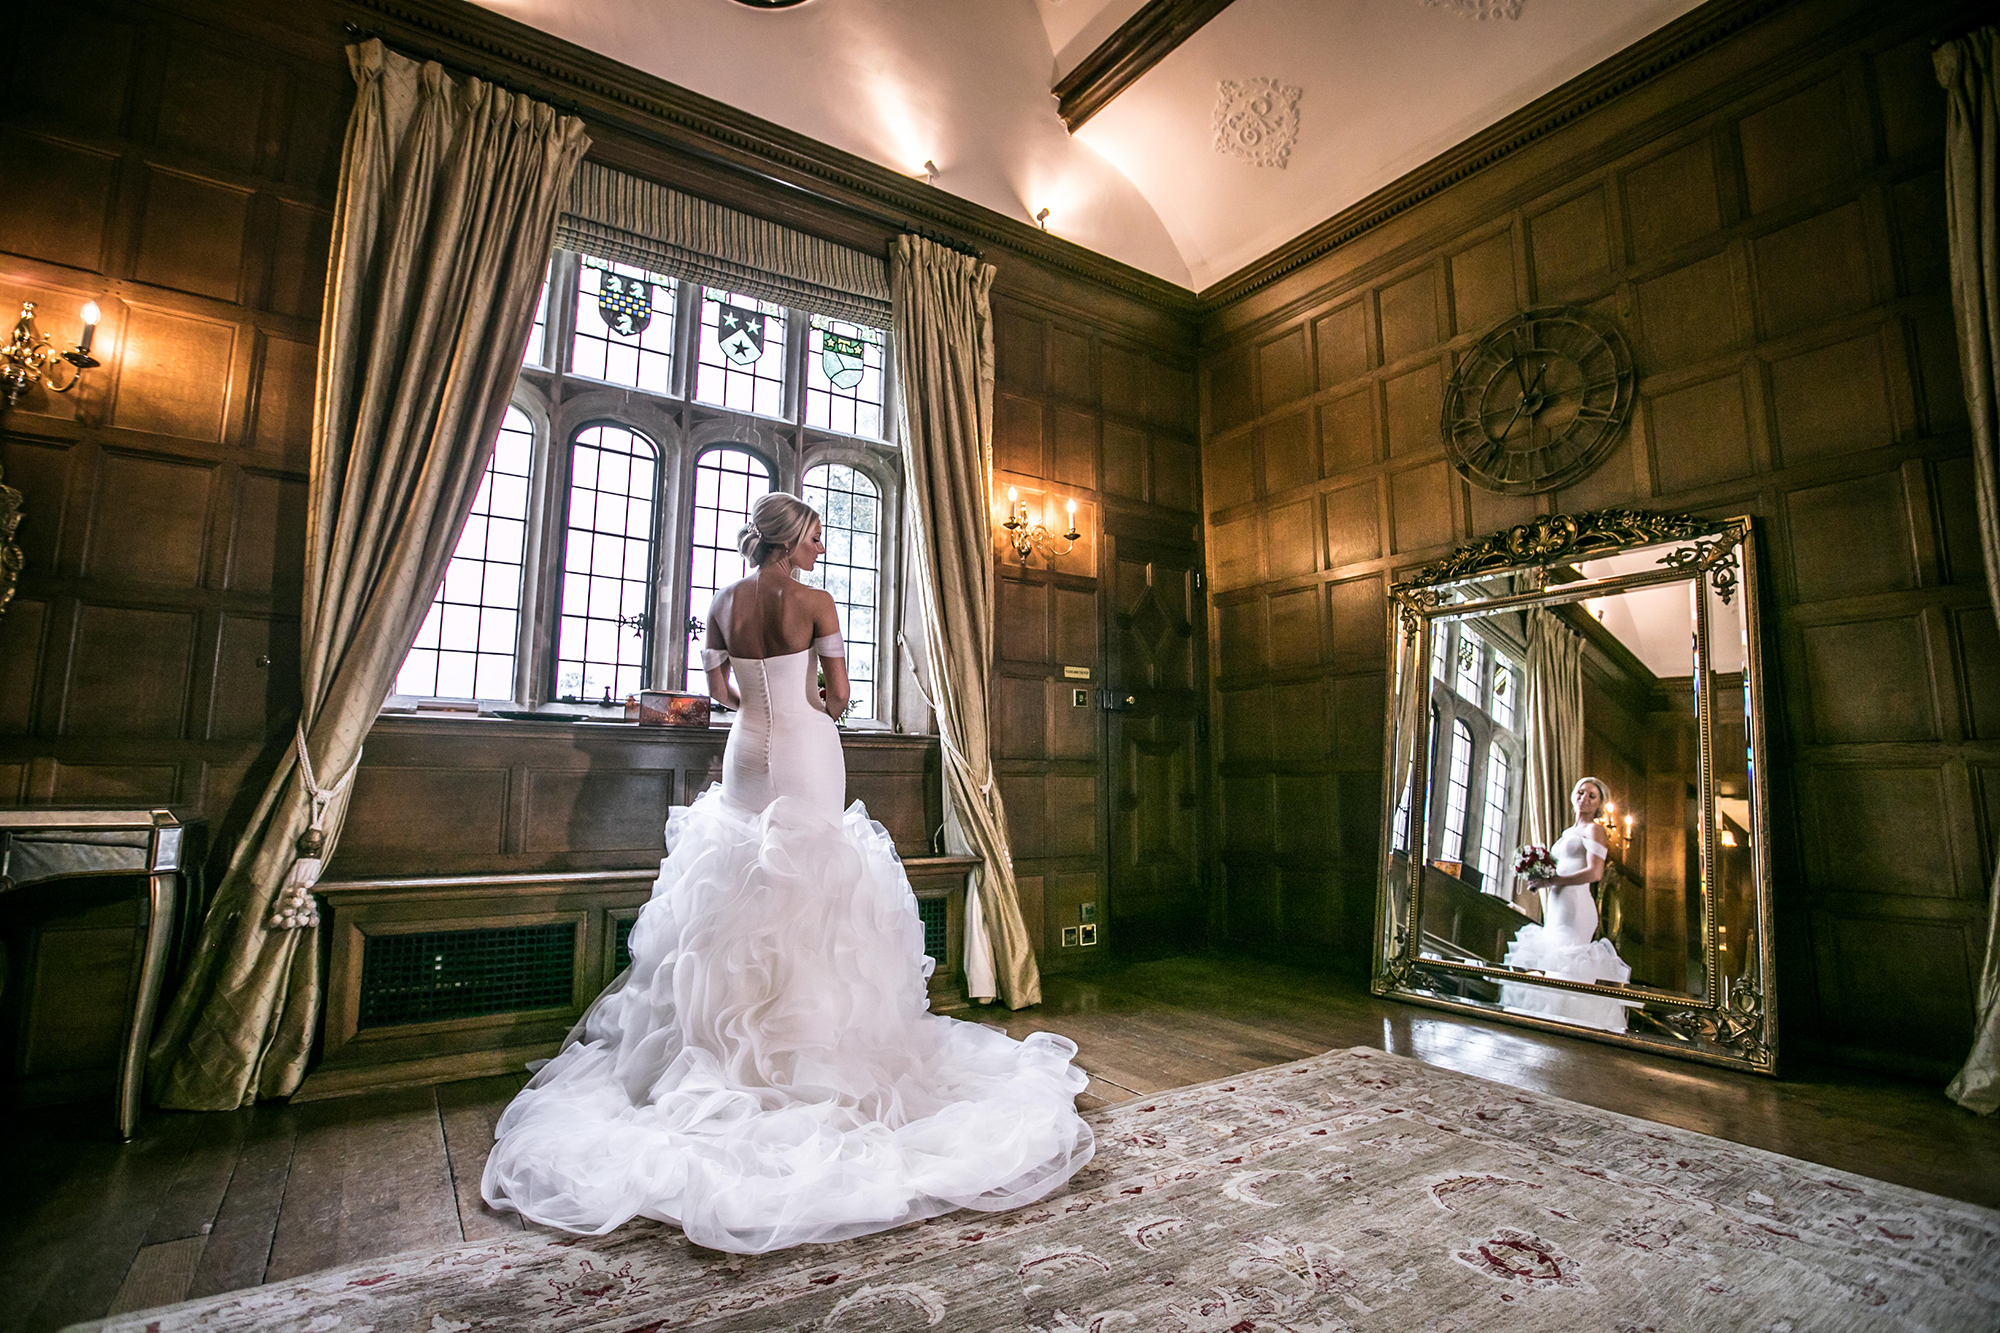 Bride looking at herself in a mirror, in a Stately Bedroom, at Hengrave Hall before her Wedding